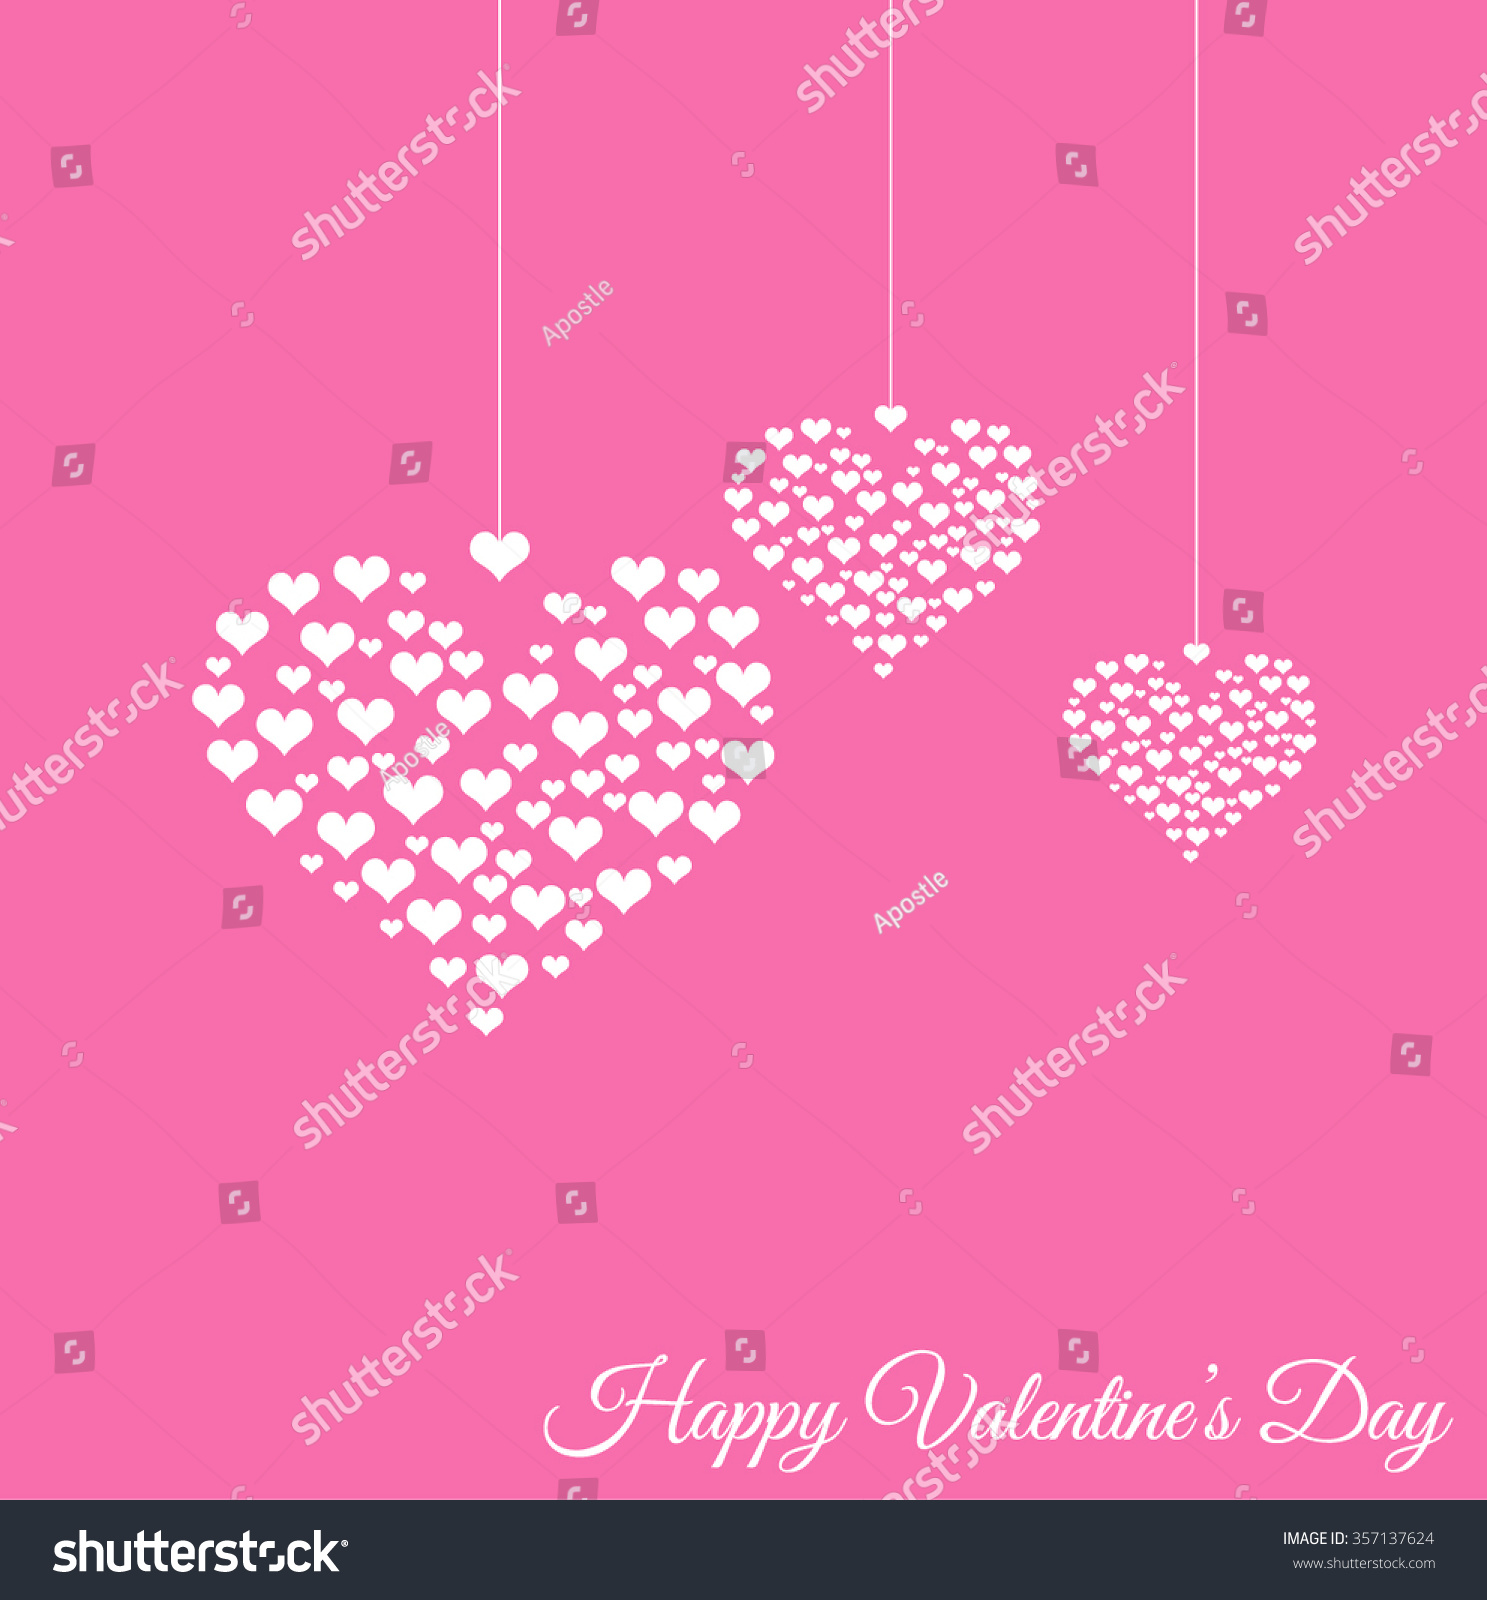 happy valentines day celebration concept with beautiful decorated heart shapes on white background happy valentines - Happy Valentines Day Text Message